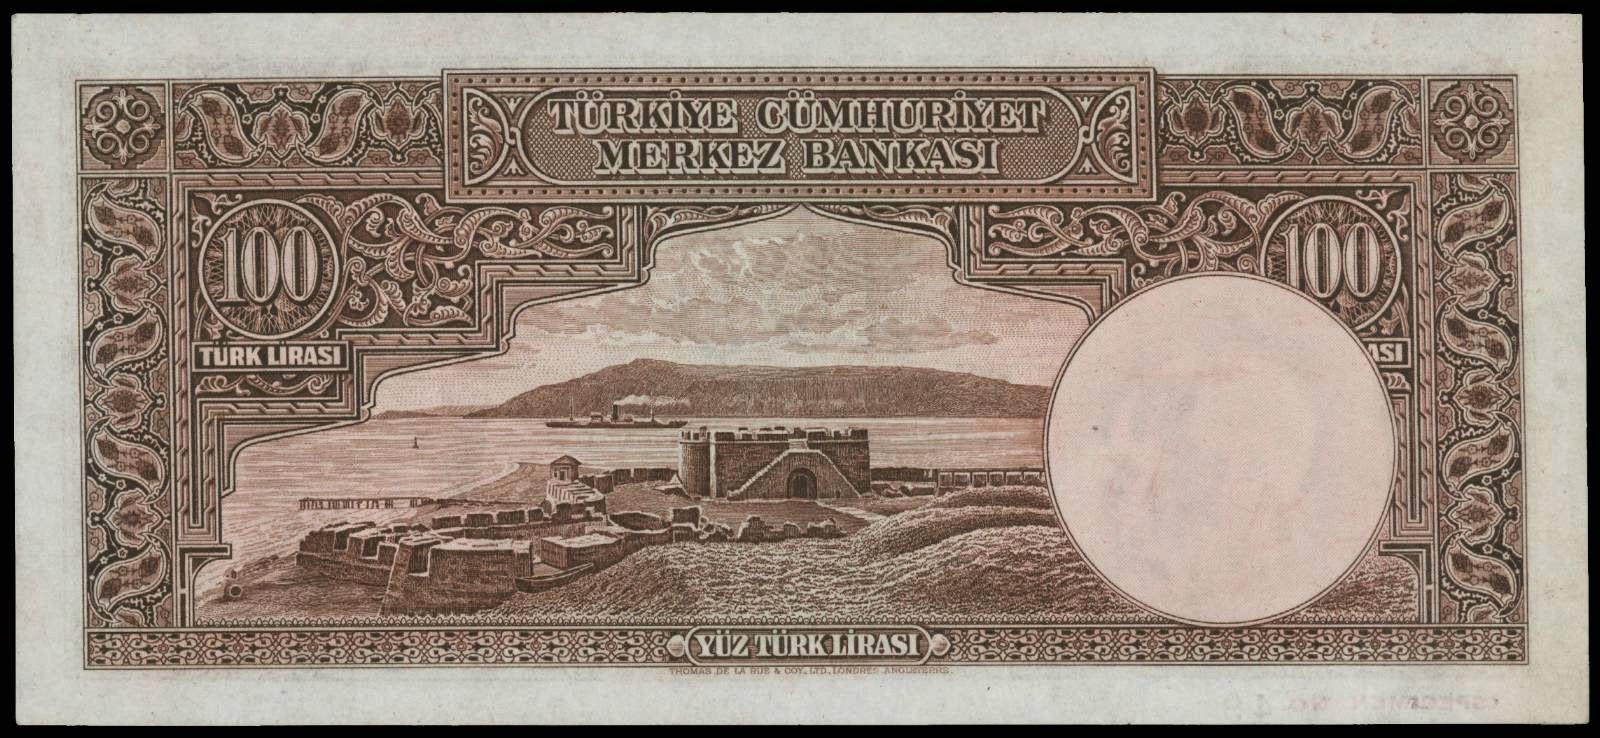 Turkey currency pictures 100 Lira banknote 1930